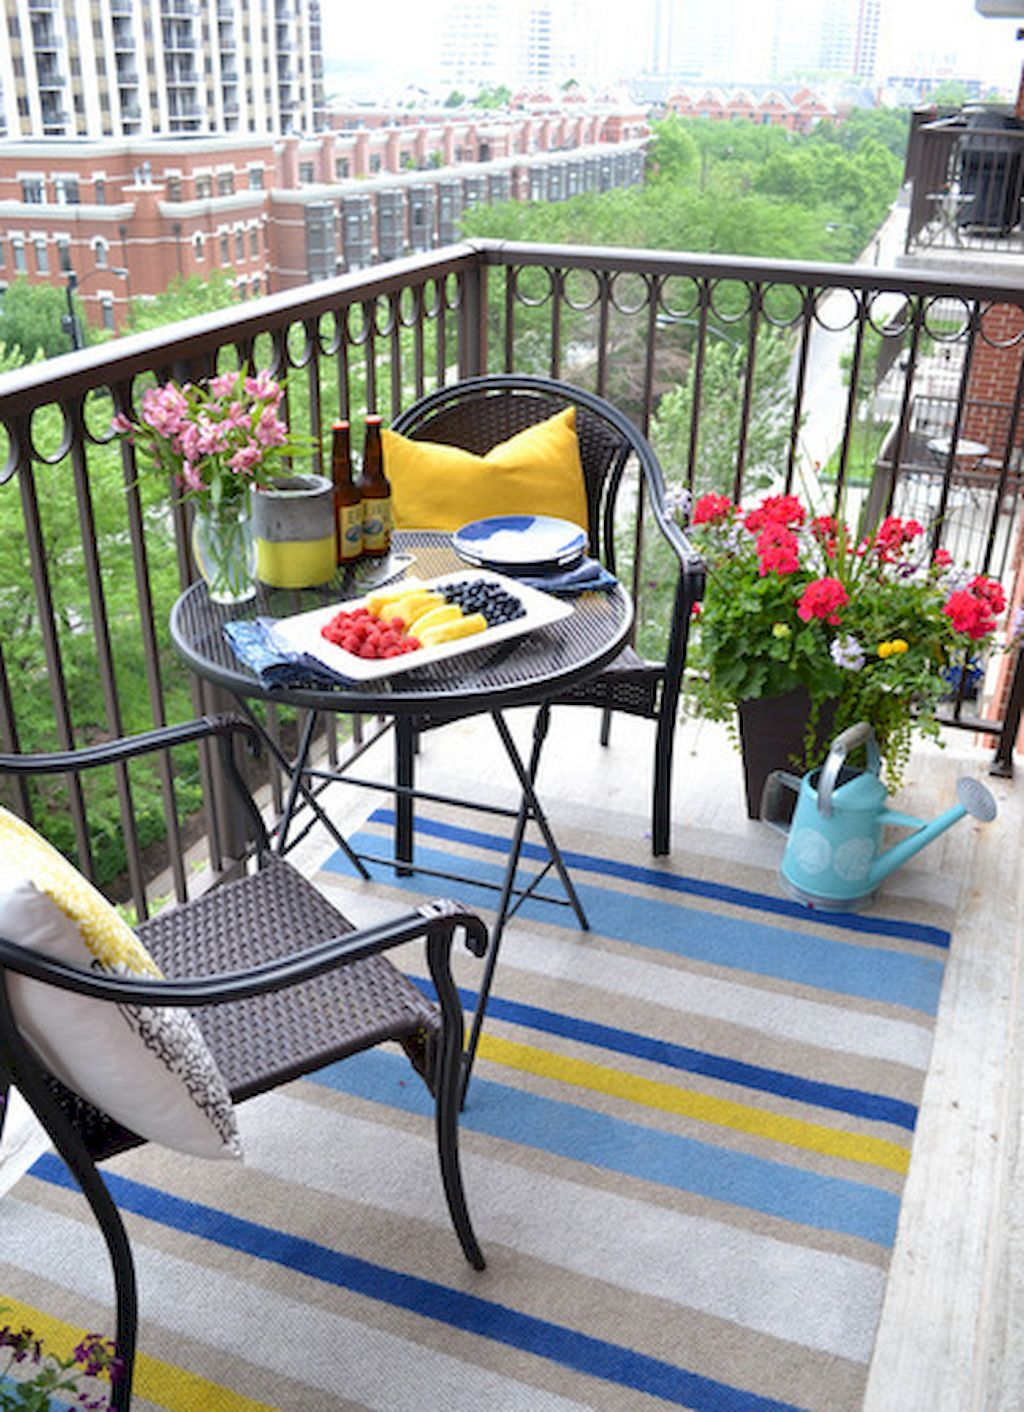 Small Apartment Balcony Garden Ideas: Small Apartment Balcony Decorating Ideas (45)